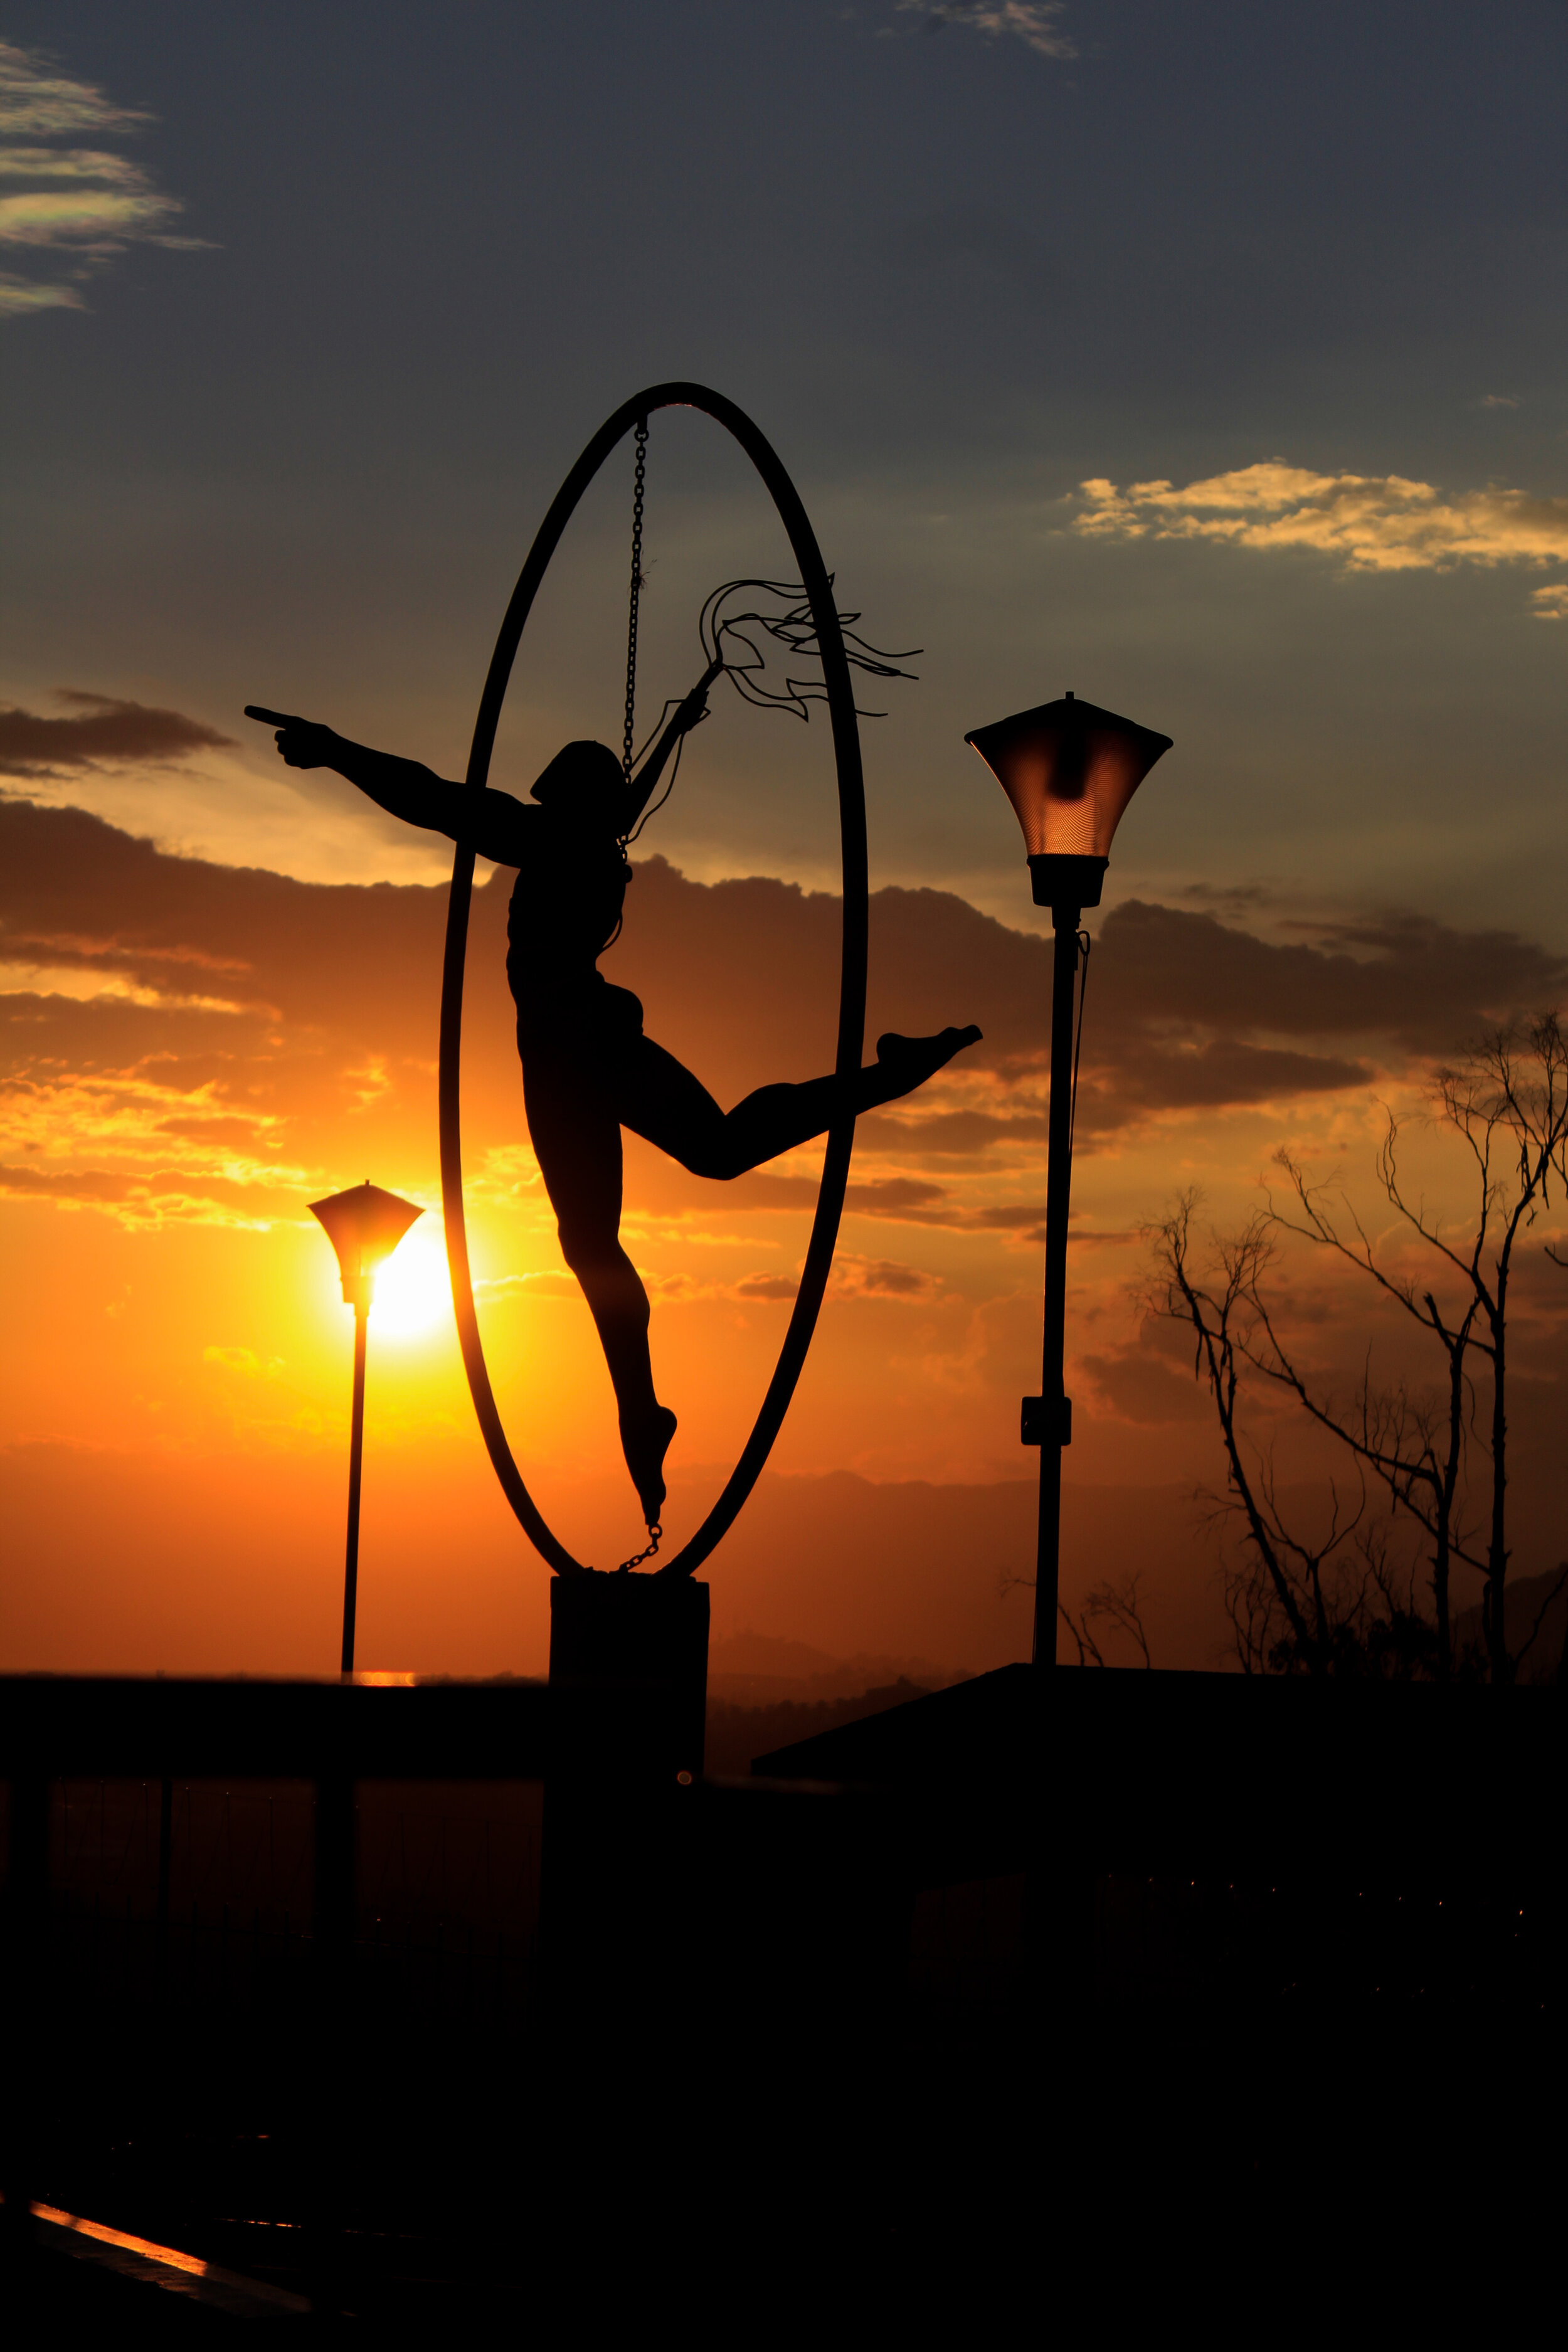 person inside a circle holding object in front of sunset